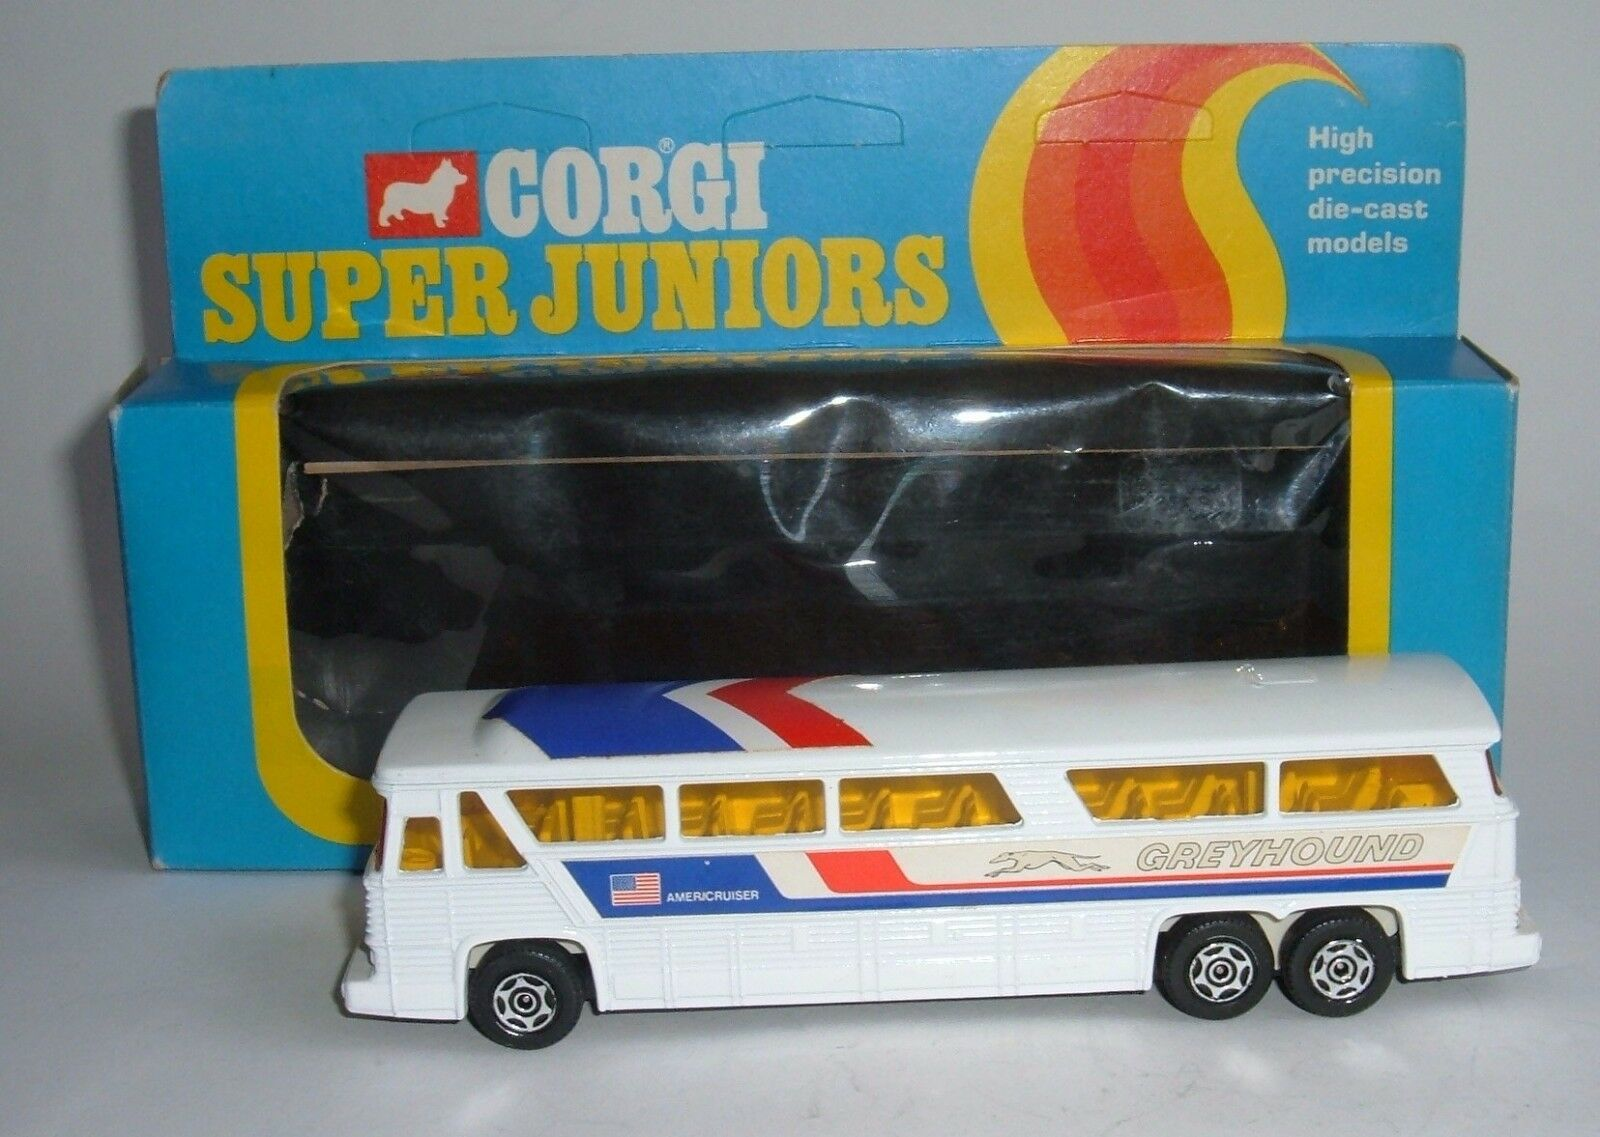 Corgi Super Juniors Toys No. 2008, Greyhound MC-8 Americuiser Bus, Near Mint.